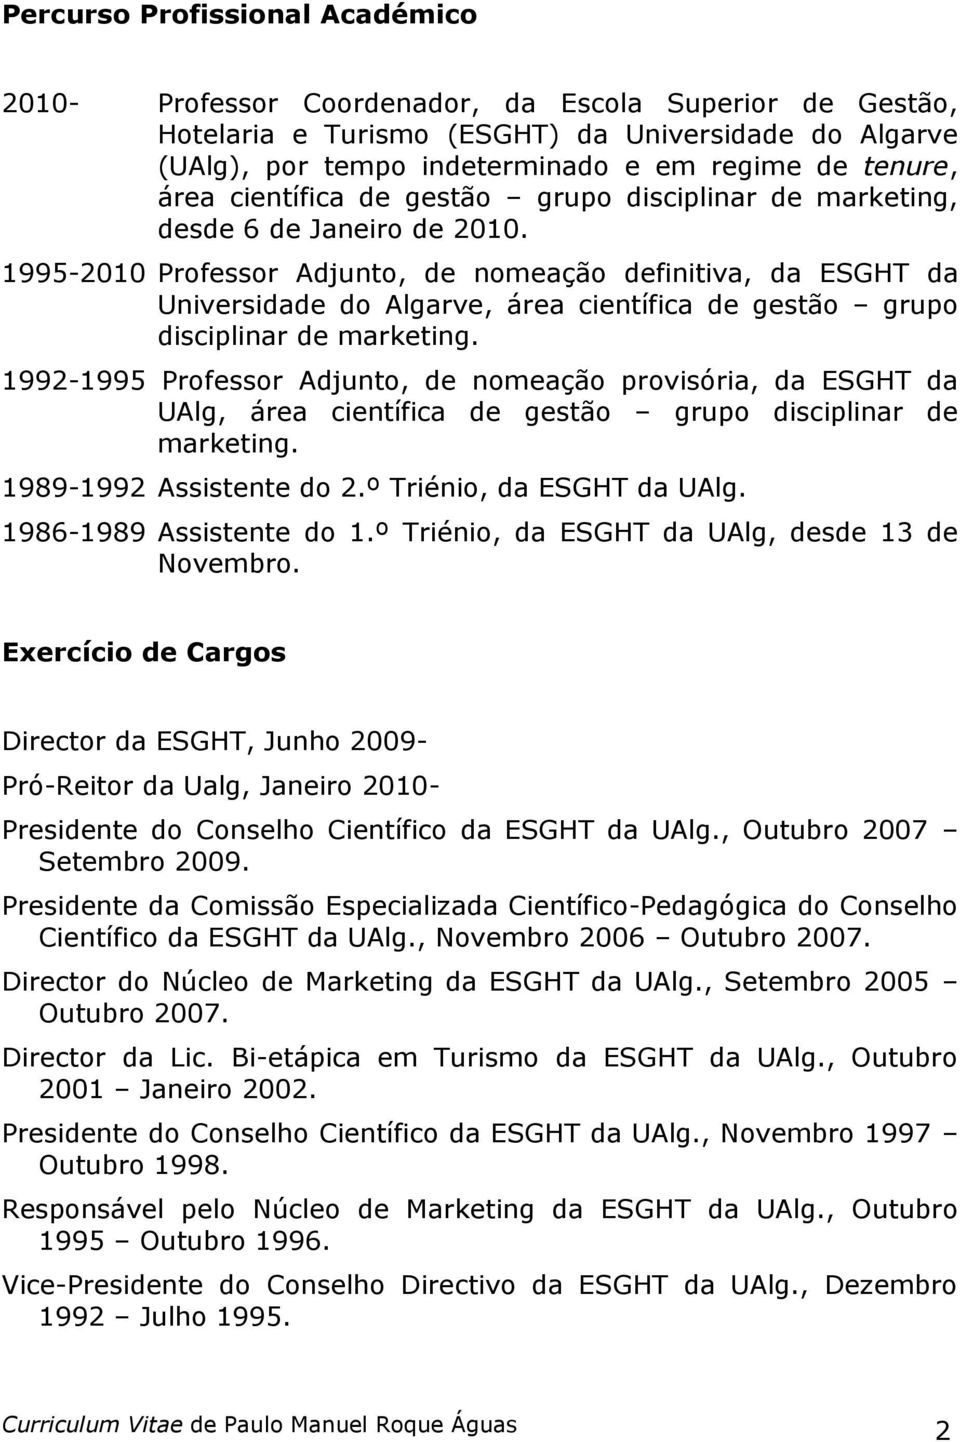 1995-2010 Professor Adjunto, de nomeação definitiva, da ESGHT da Universidade do Algarve, área científica de gestão grupo disciplinar de marketing.